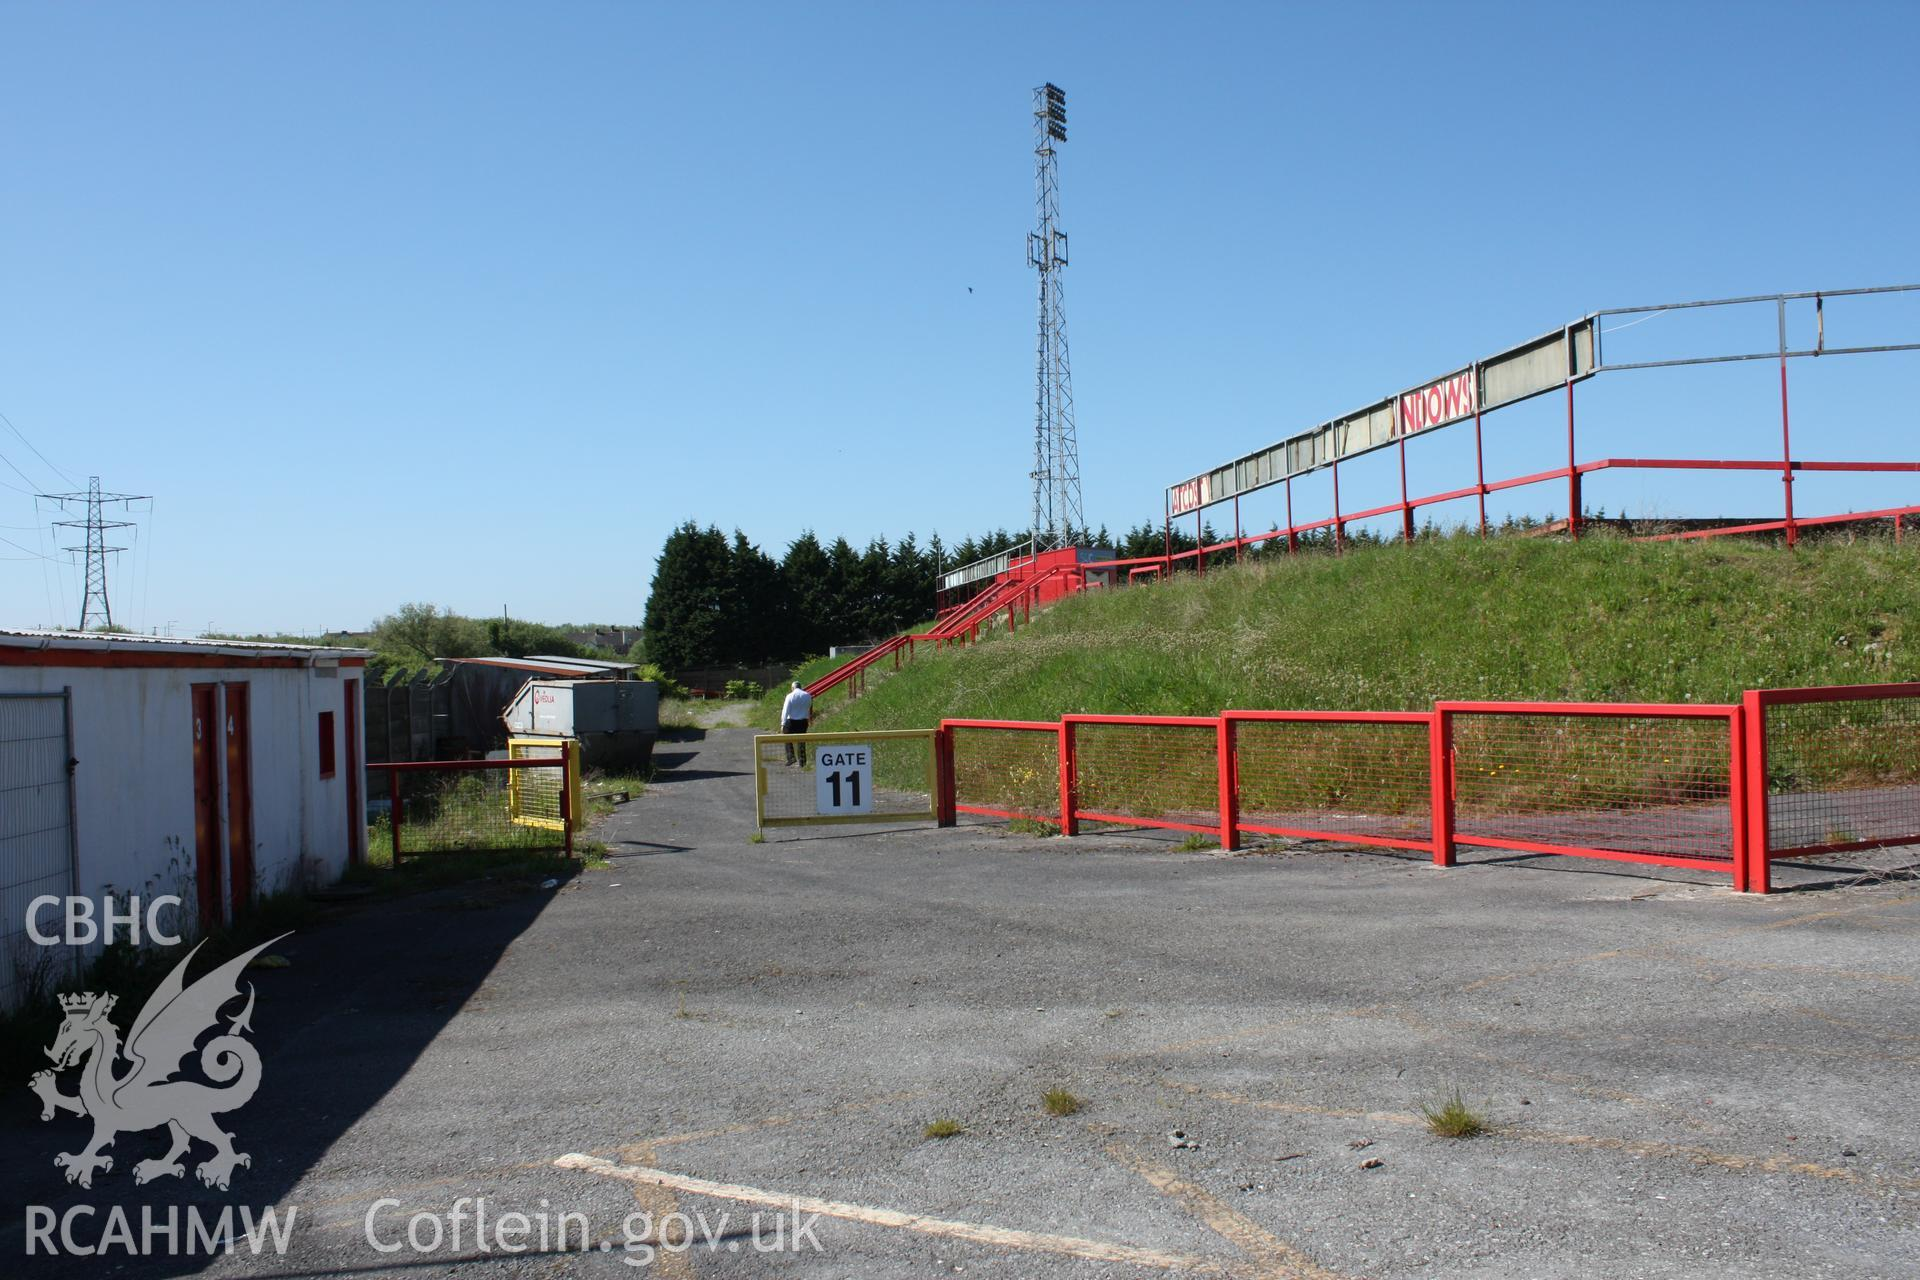 Turnstiles 3 & 4, gate 11 and rear of East Terrace